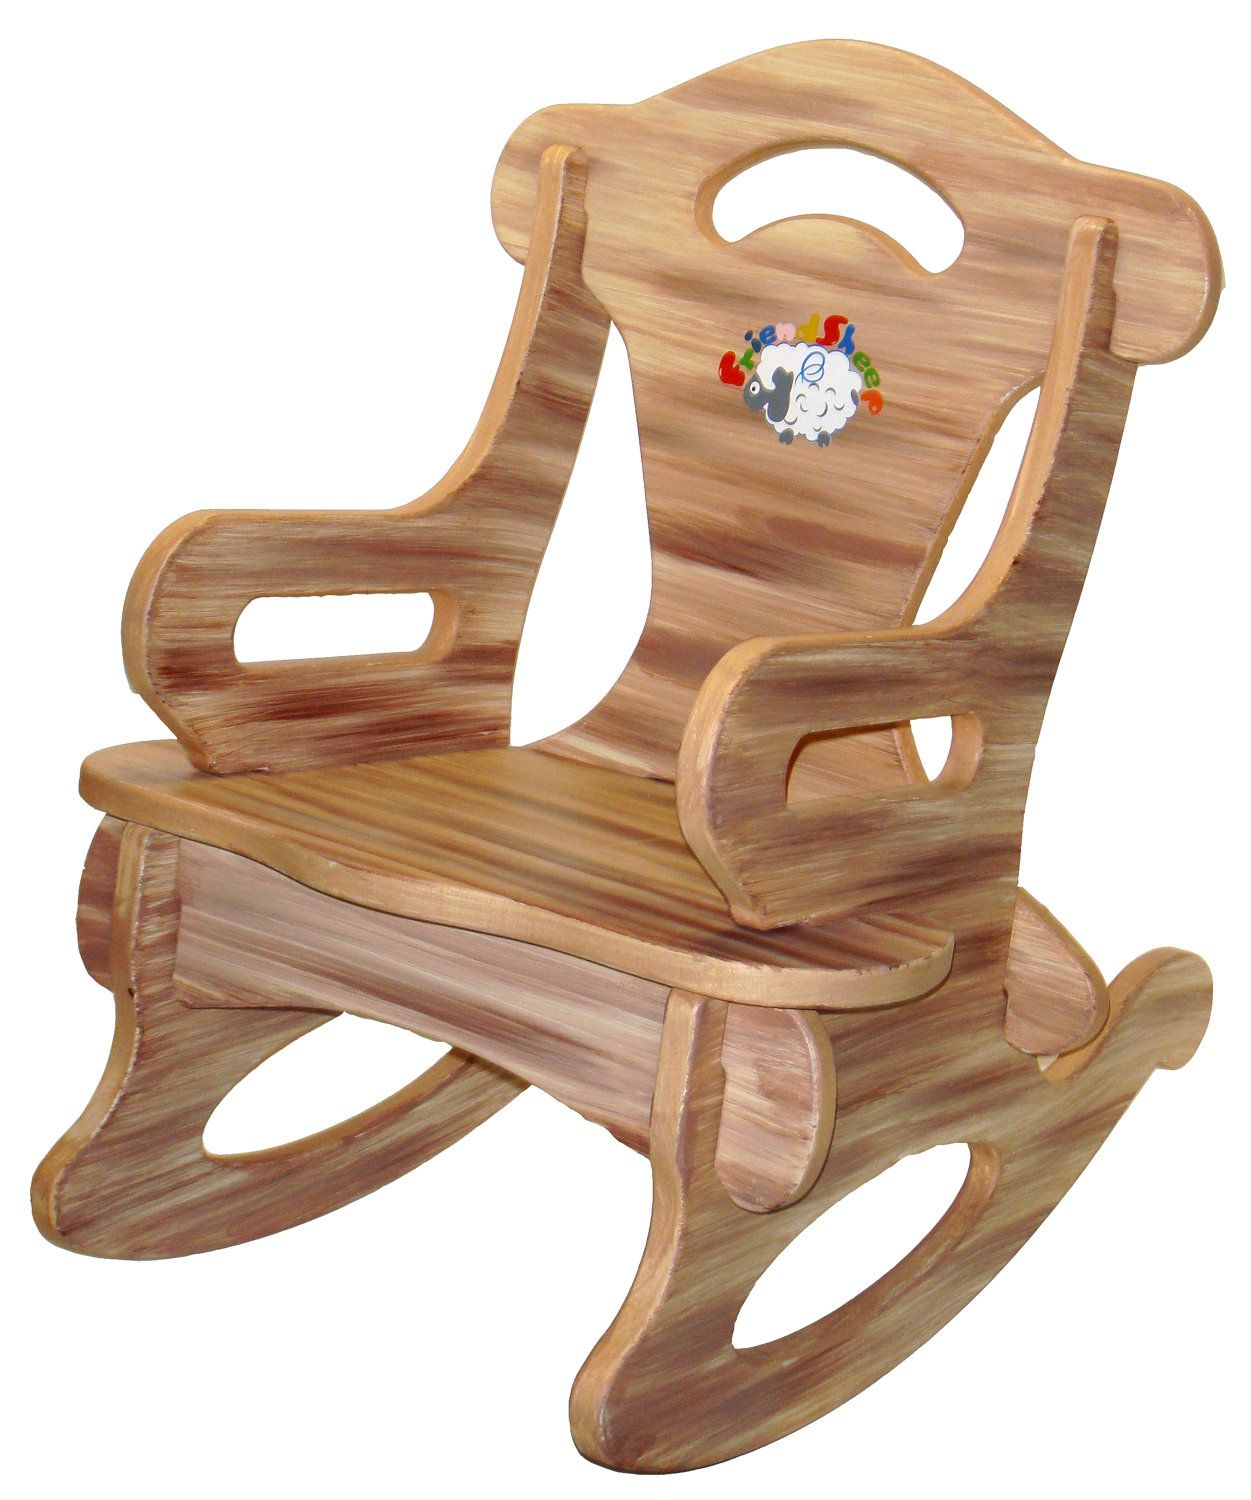 Nursery Wooden Rocking Chair Brown Puzzle Rocker Rocking Chair Solid Wood For Kid Child Baby